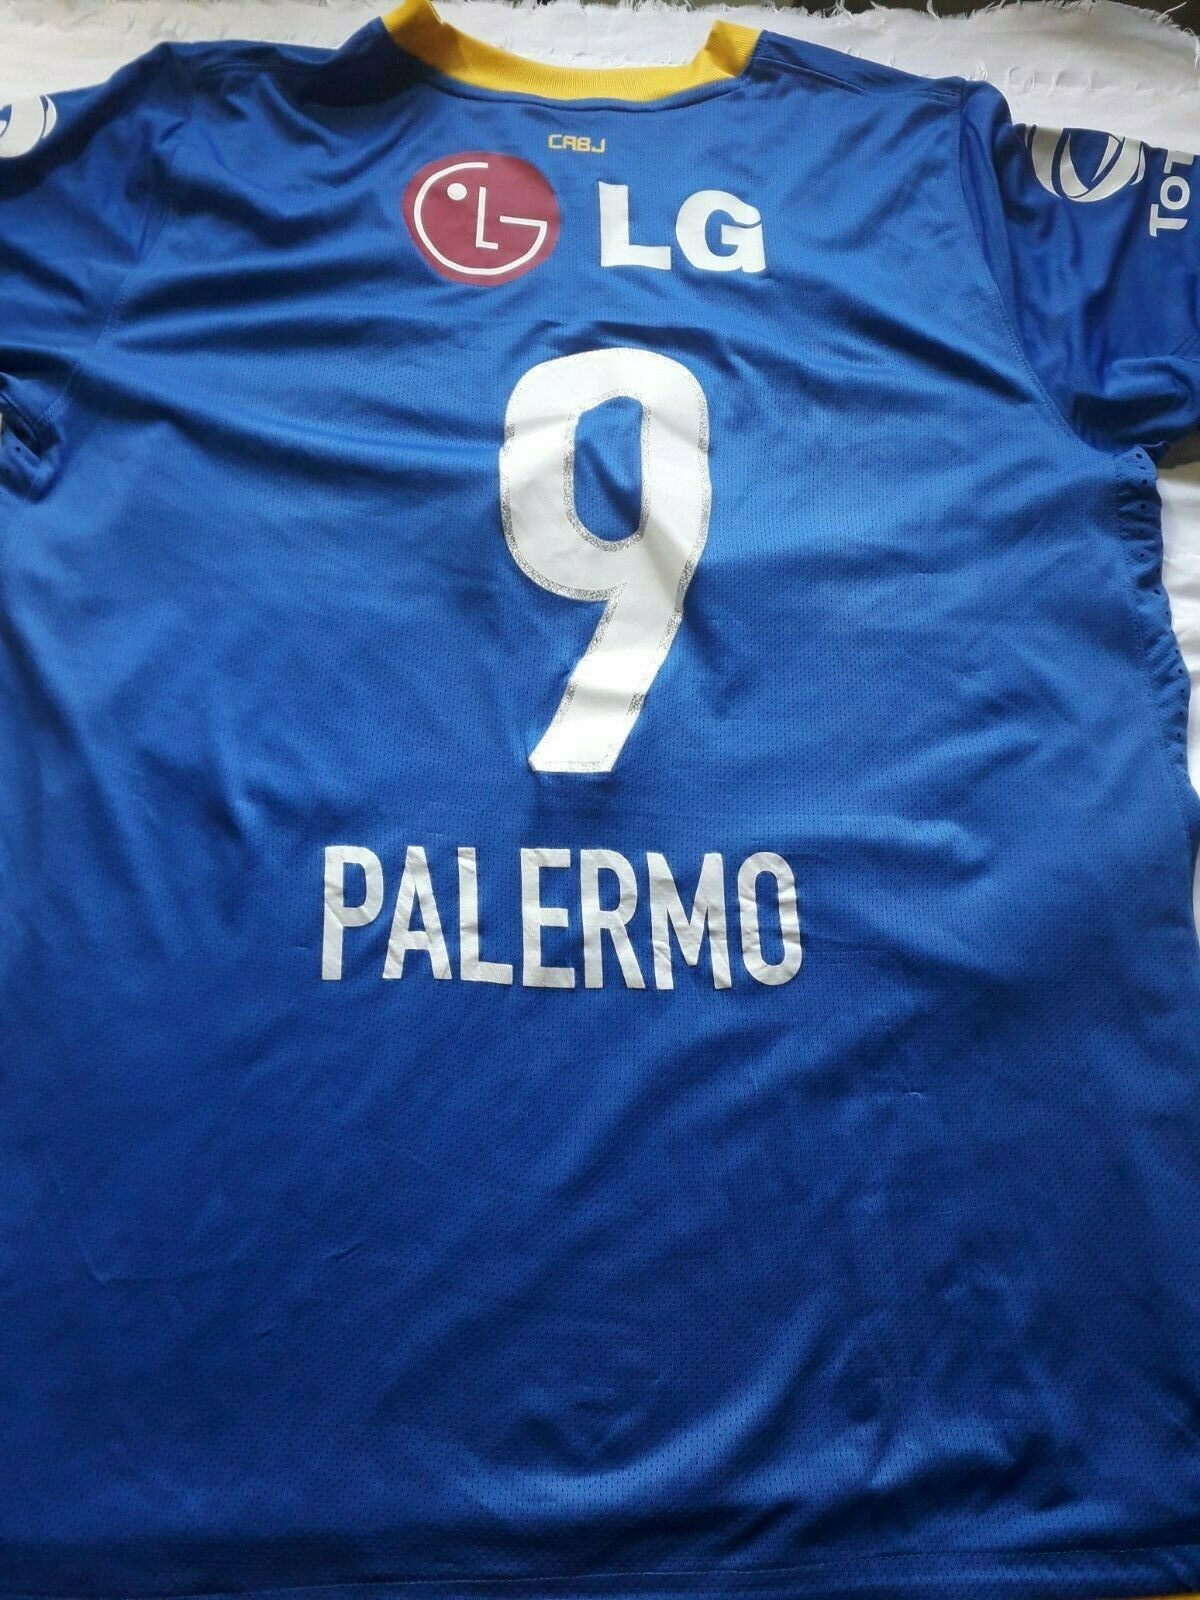 Old   jersey Boca juniors  argentoina   with 9 Palermo Diuominiione XL